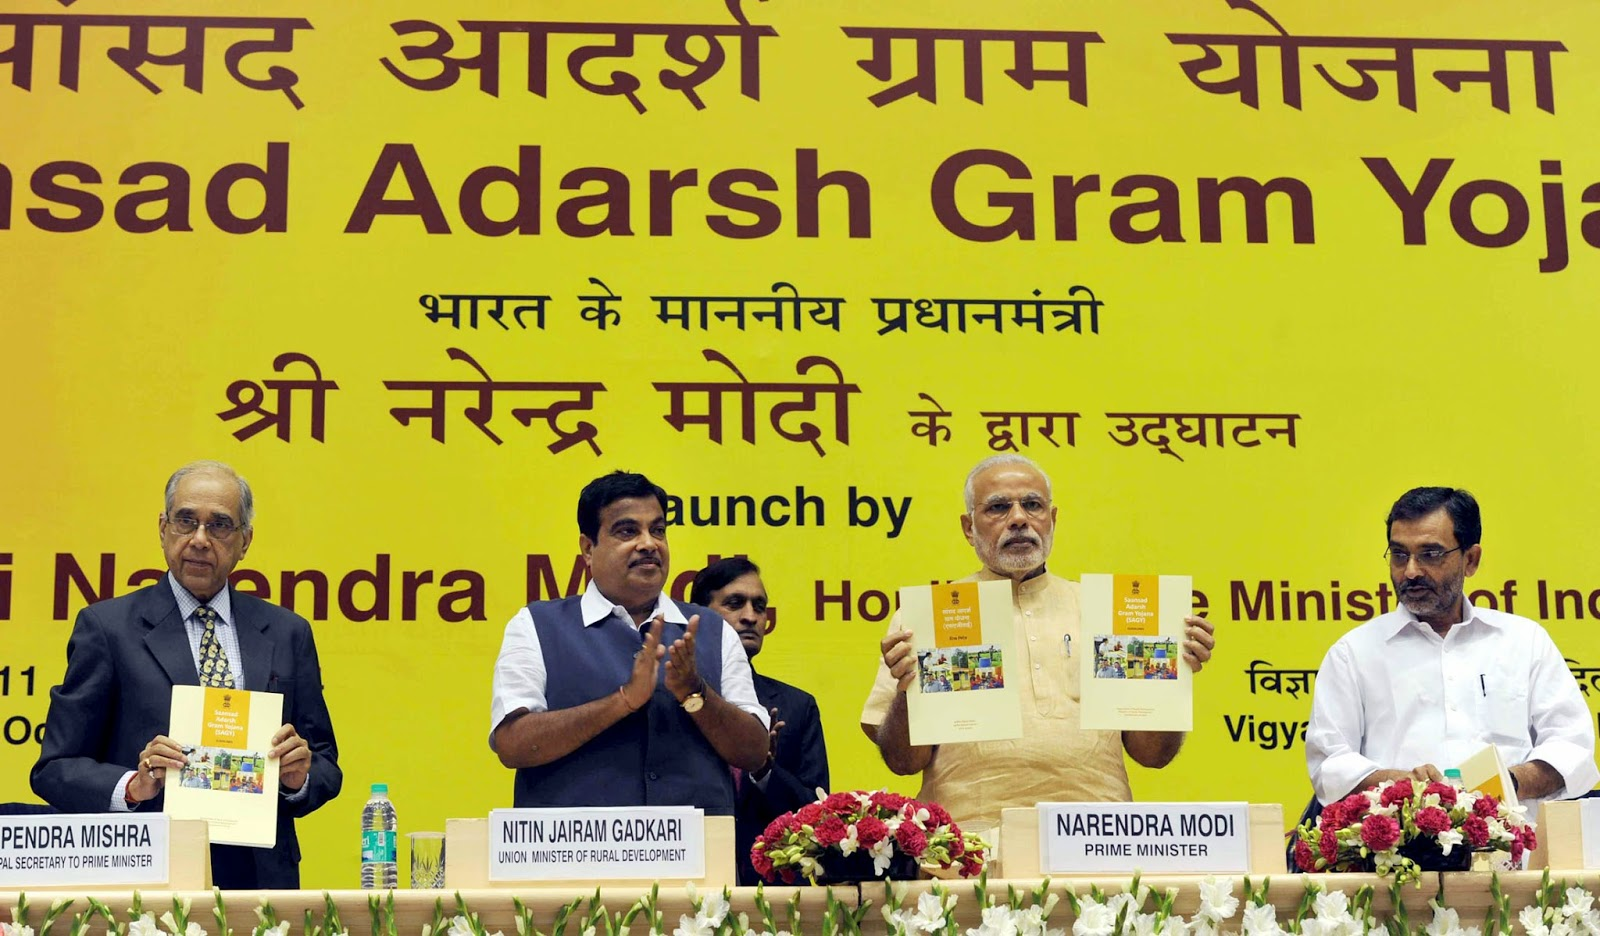 adarsh gaon Jp's name is anathema to congress but modi has designed the sansad adarsh  gram project in a completely bi-partisan way, for all 750 lok.